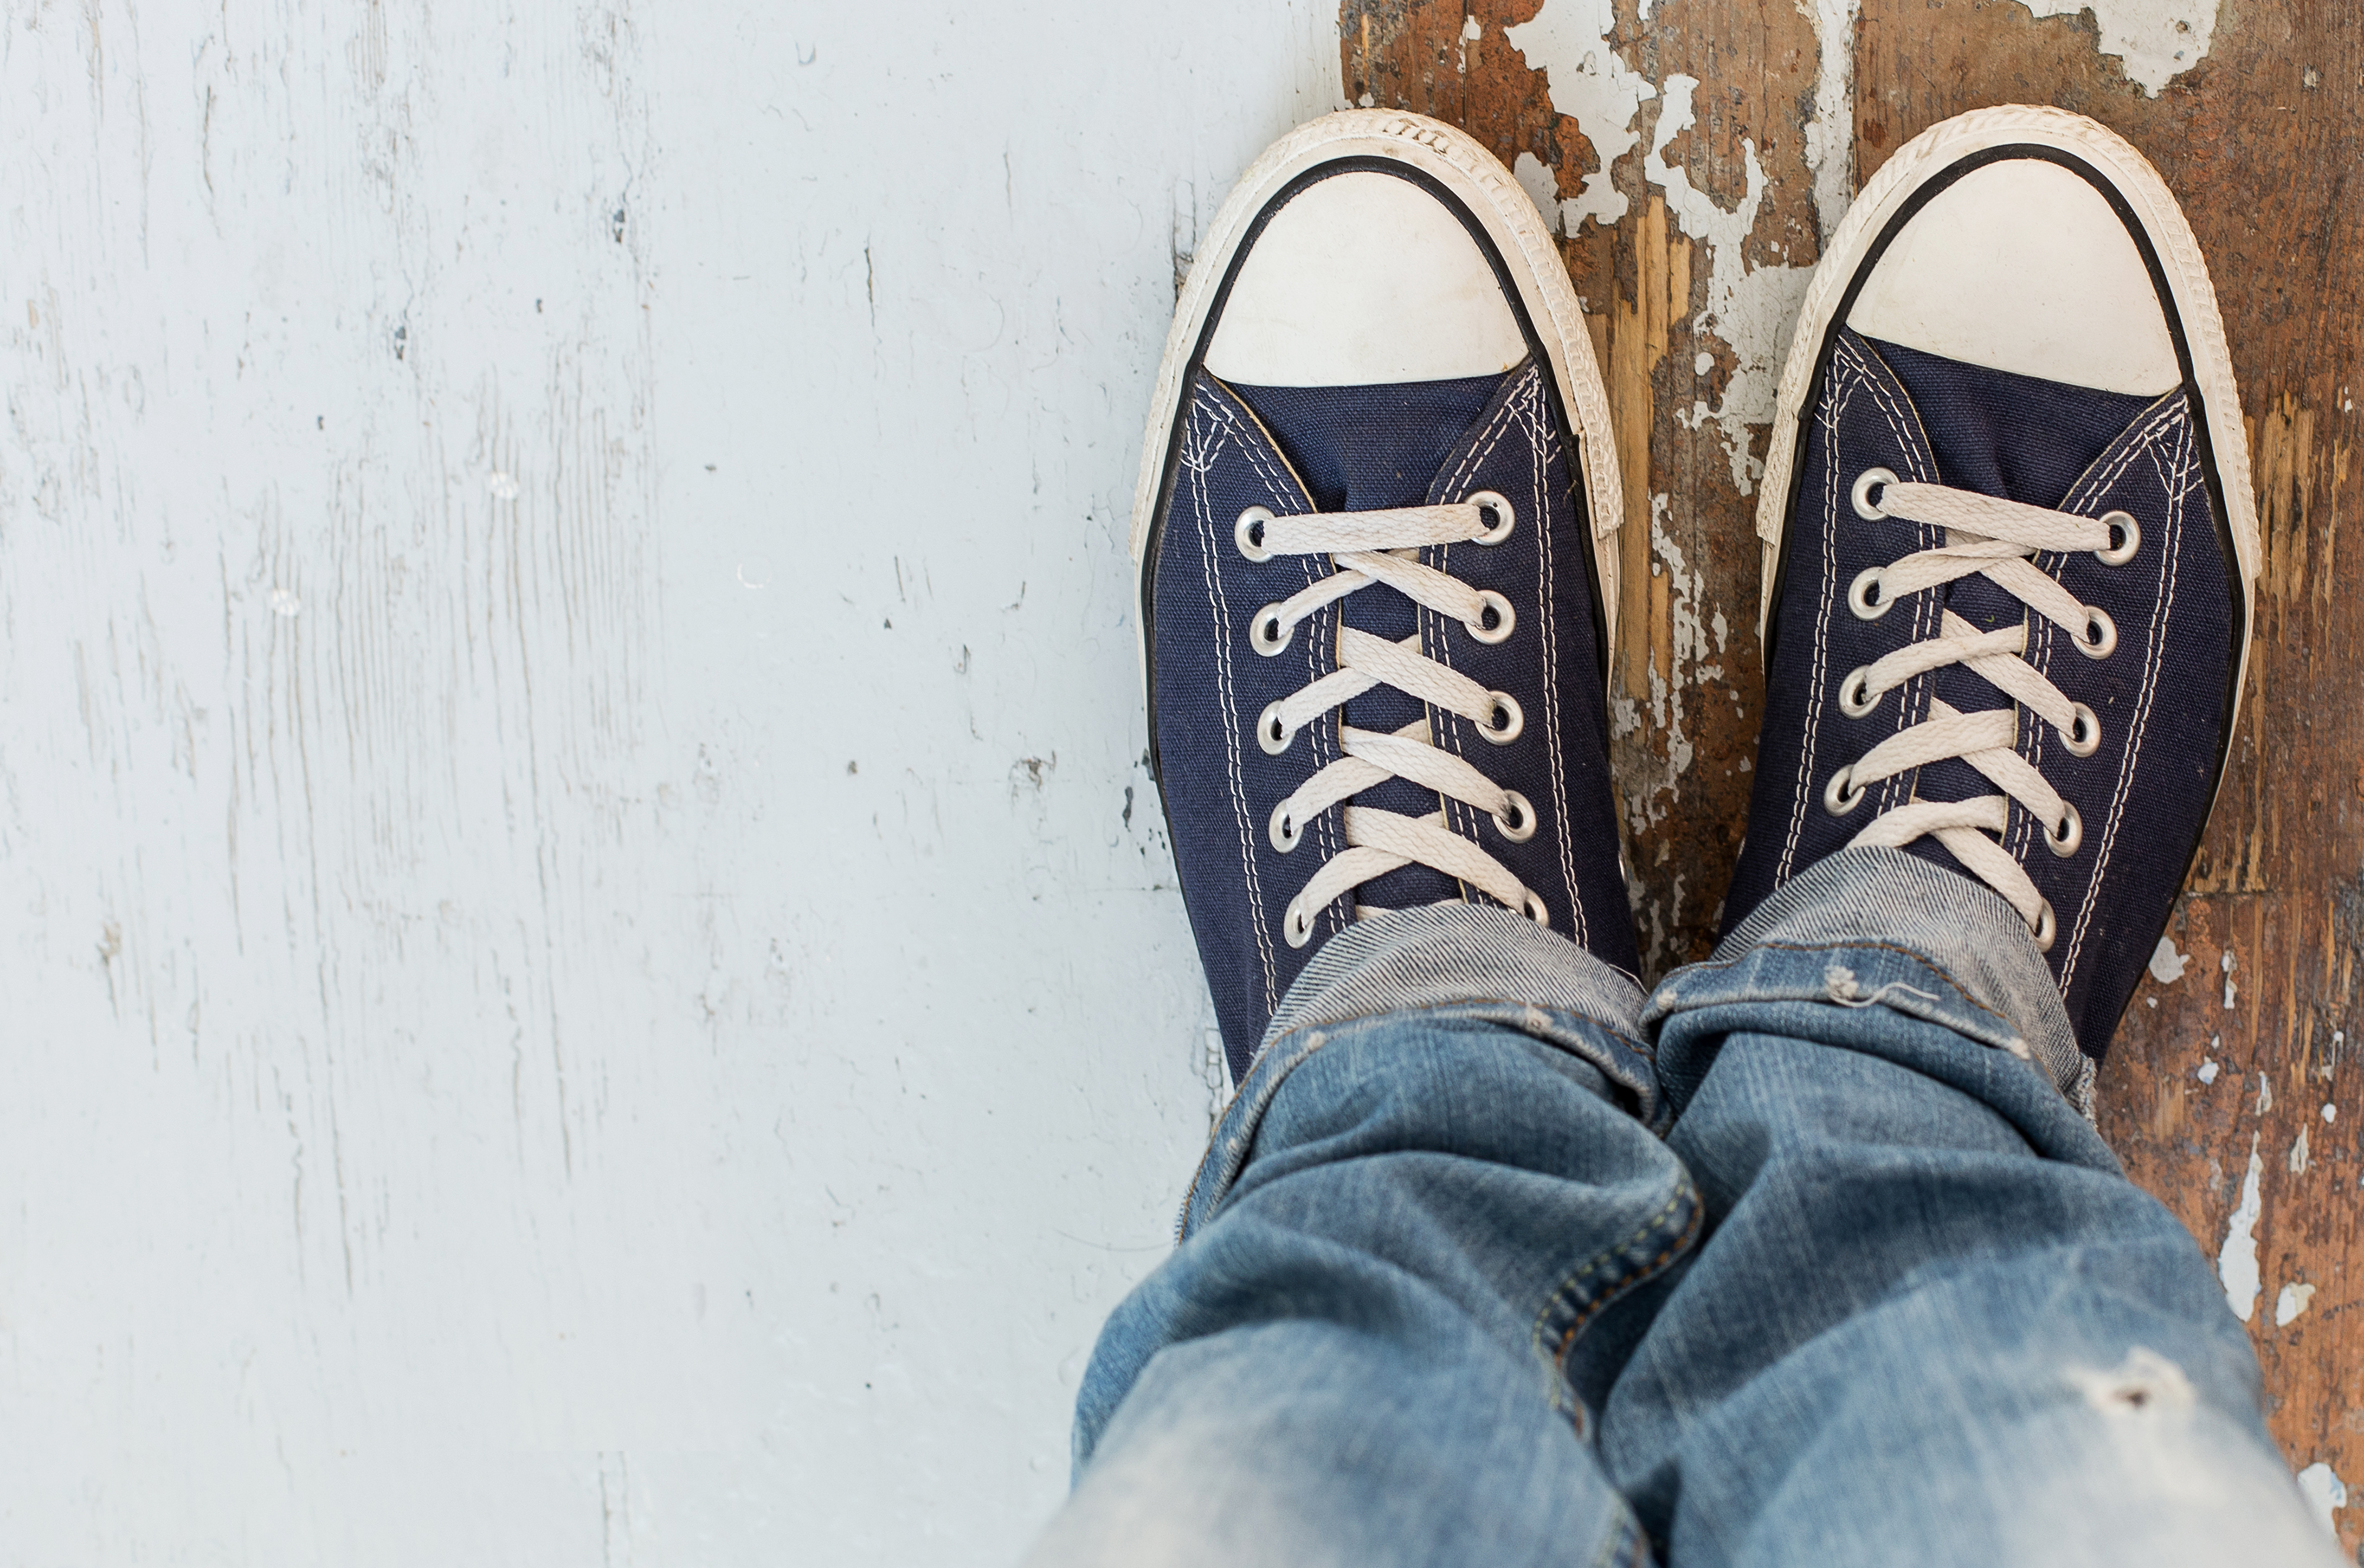 10 Simple Changes You Can Make to Help Boost Weekend Church Attendance